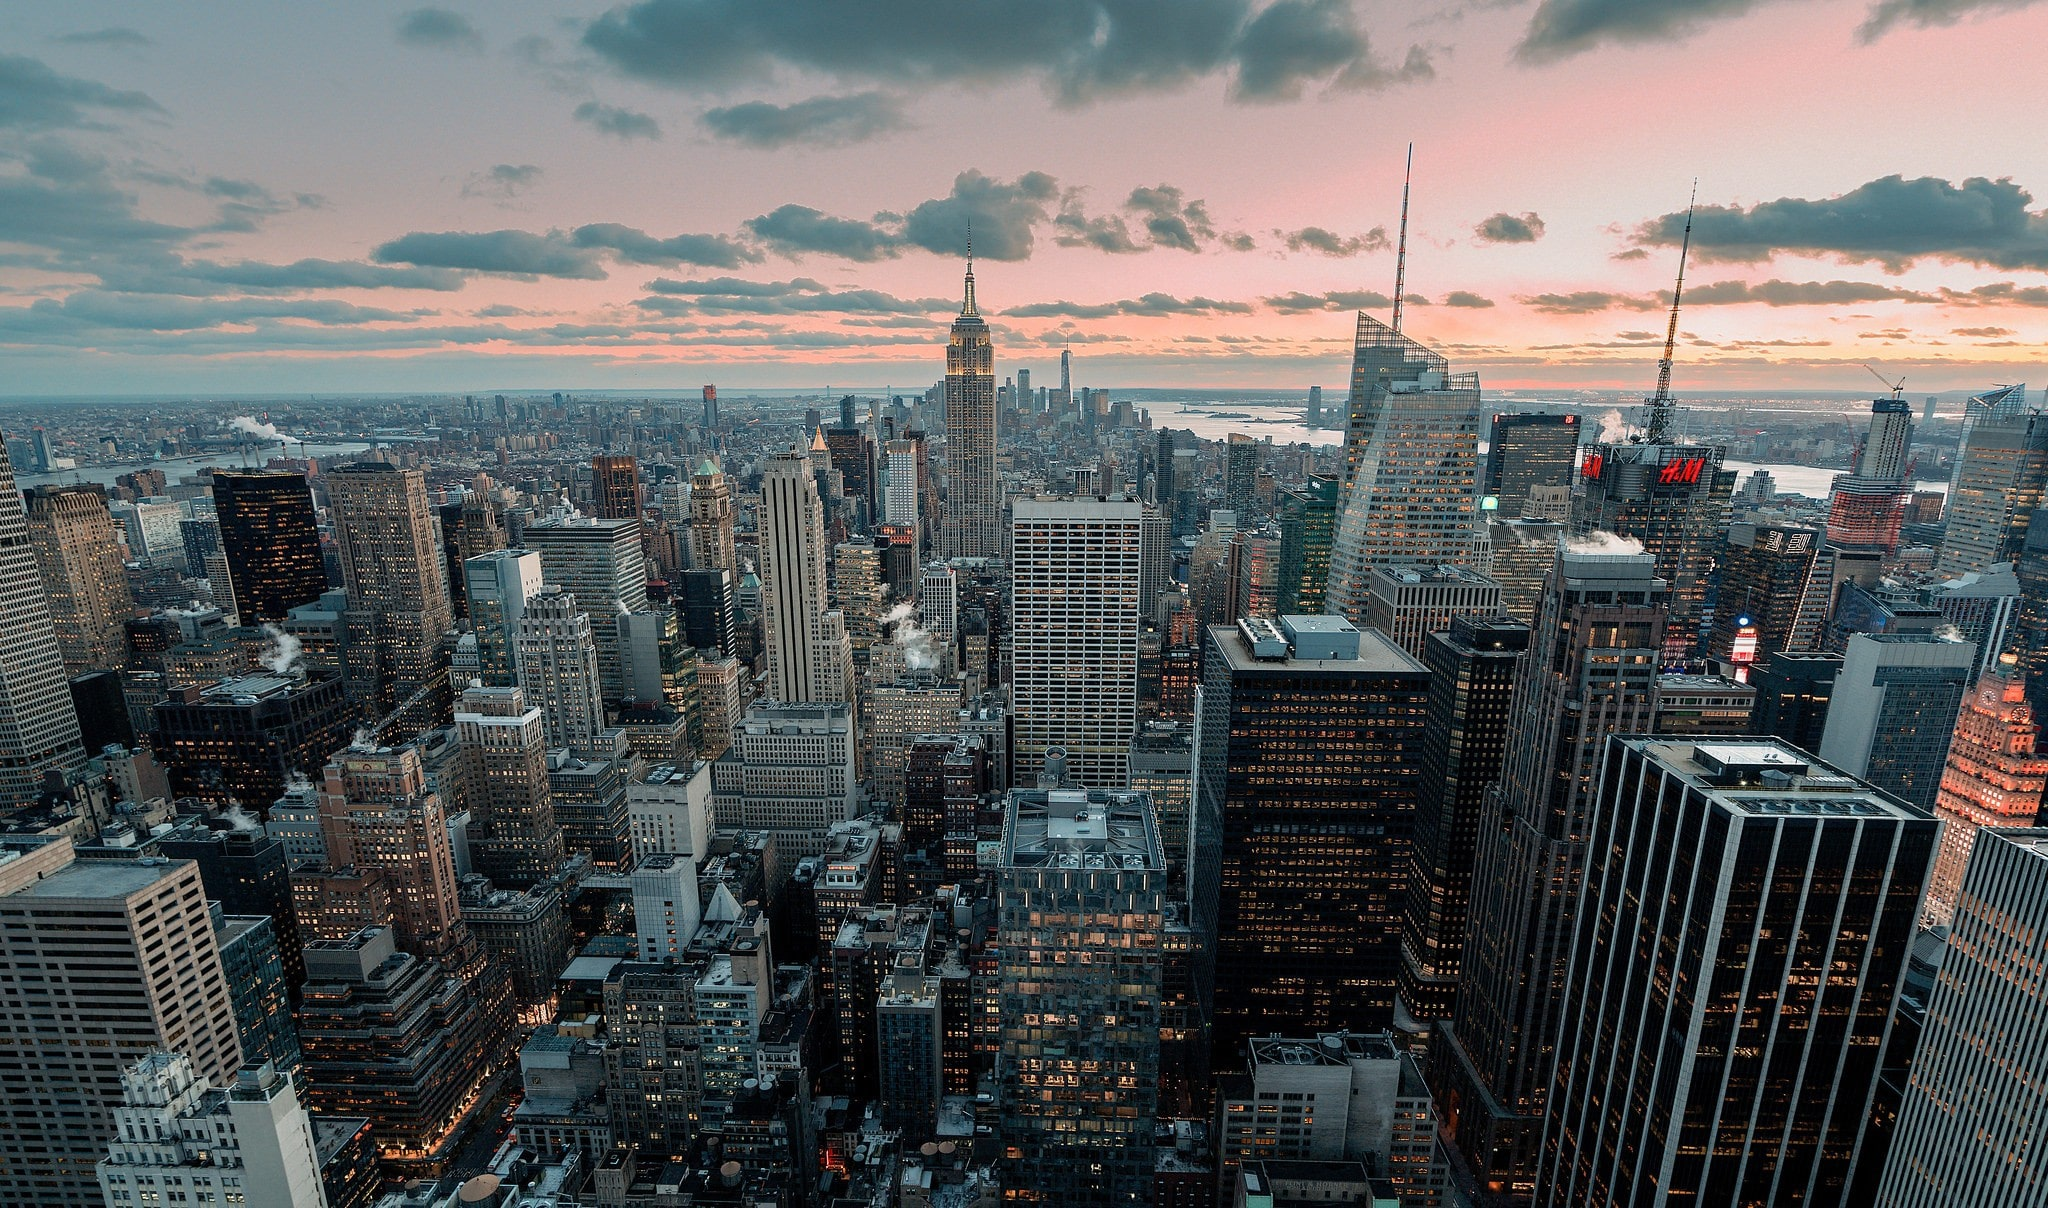 Man Made New York Cities United States USA City Cityscape Building 2048x1208